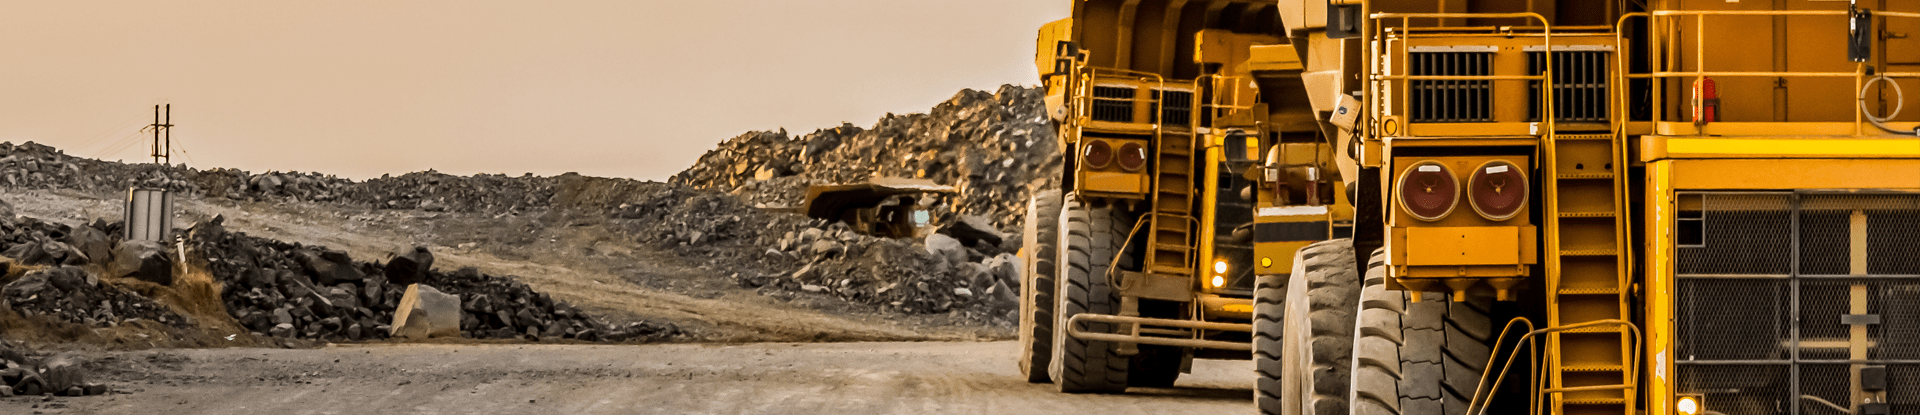 COVID-19's effect on WA's Mining Industry